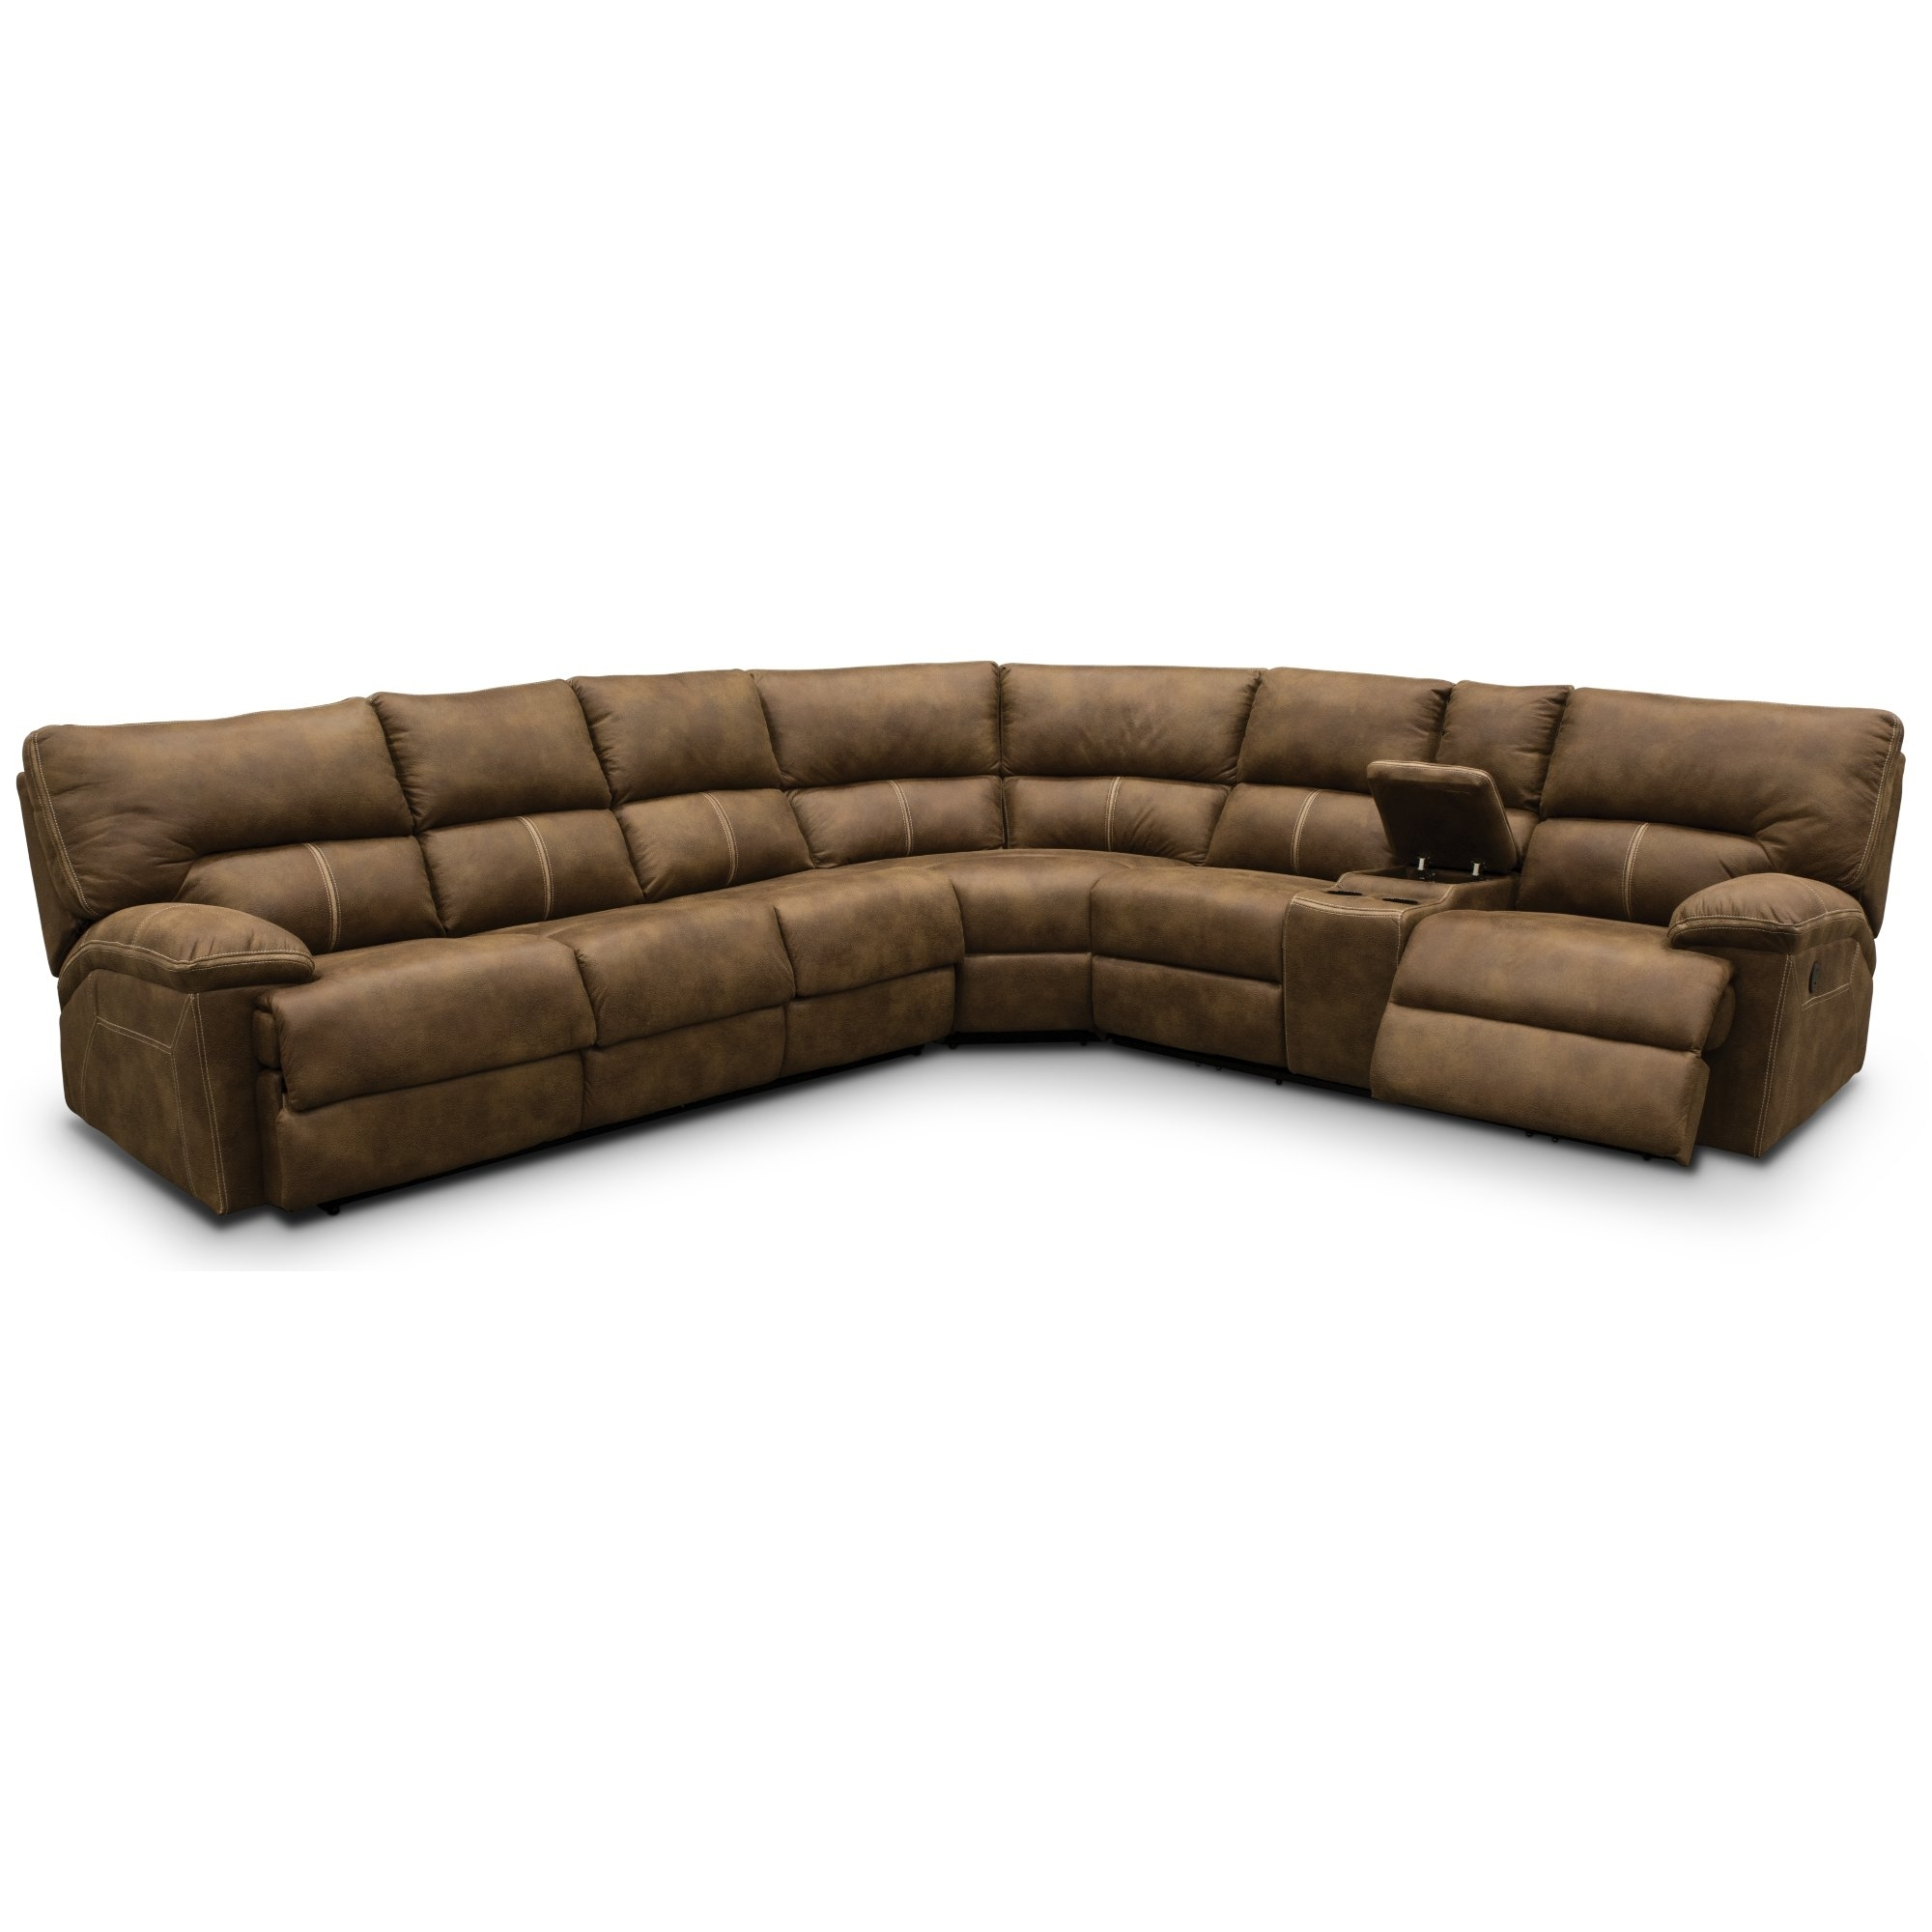 3 Piece Sectional Sofa With Recliner | Thesofasite (View 12 of 25)